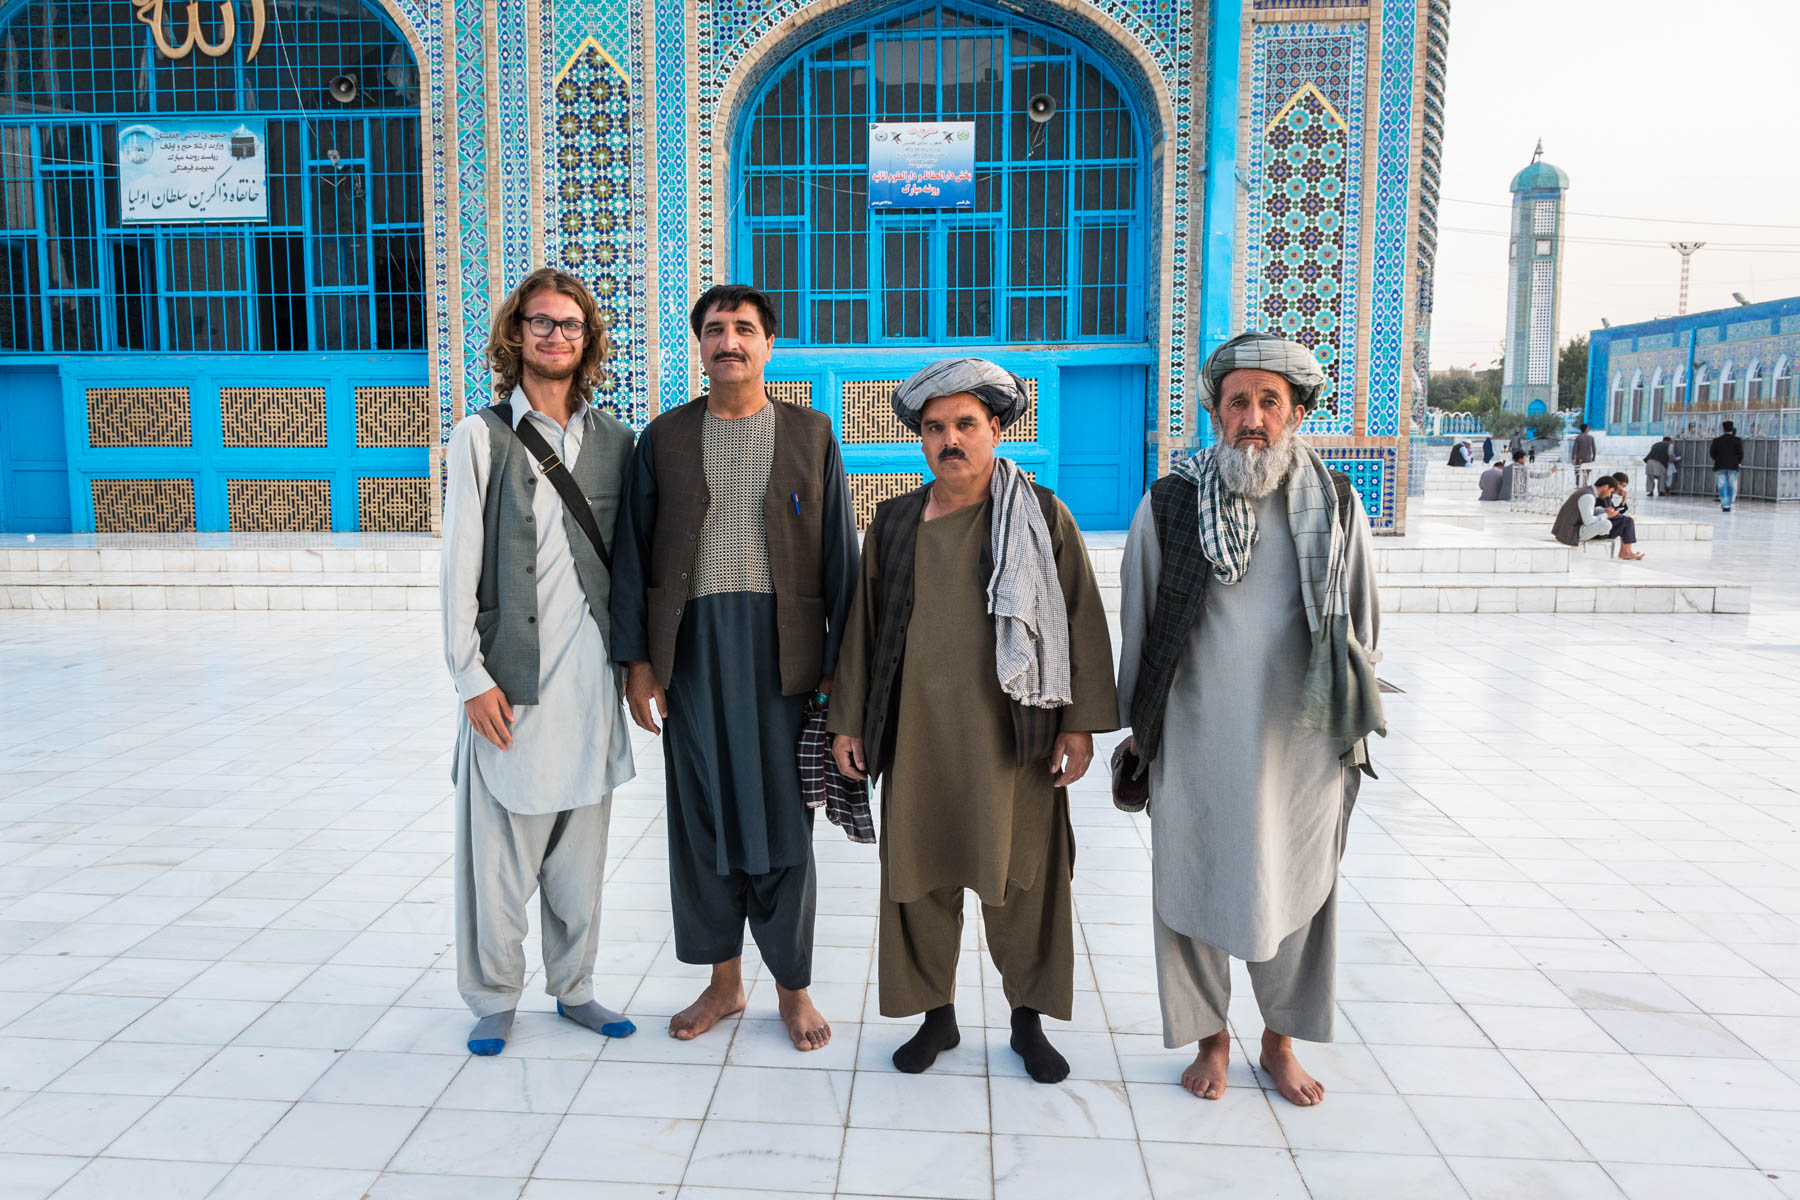 Men in Mazar-i-Sharif, Afghanistan - Lost With Purpose